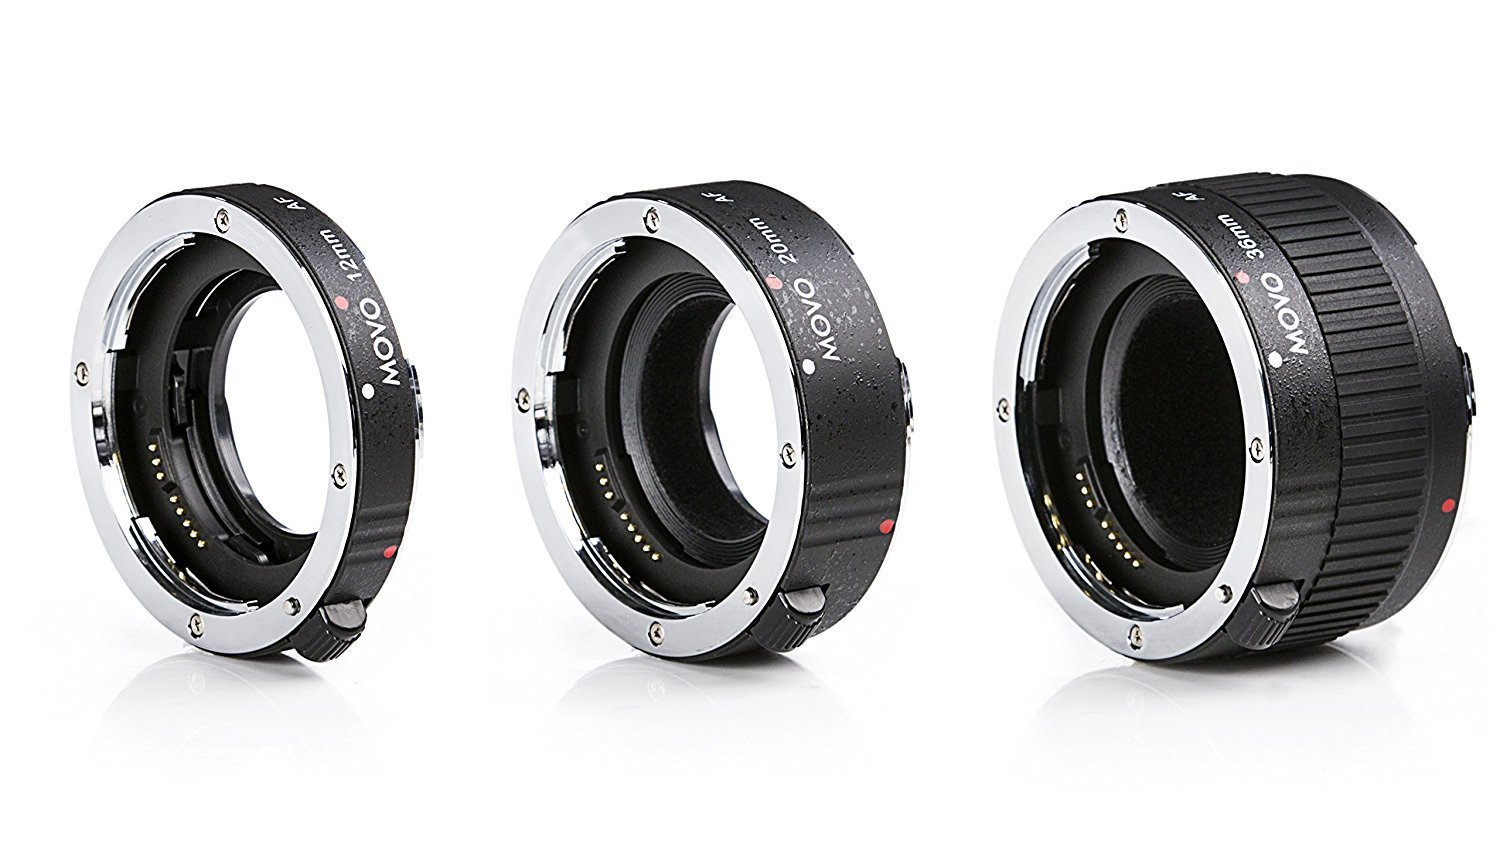 Movo MT-S68 3-Piece AF Chrome Macro Extension Tube Set for Sony Alpha DSLR Camera, A-Mount Lens System with 12mm, 20mm, 36mm Tubes by Movo